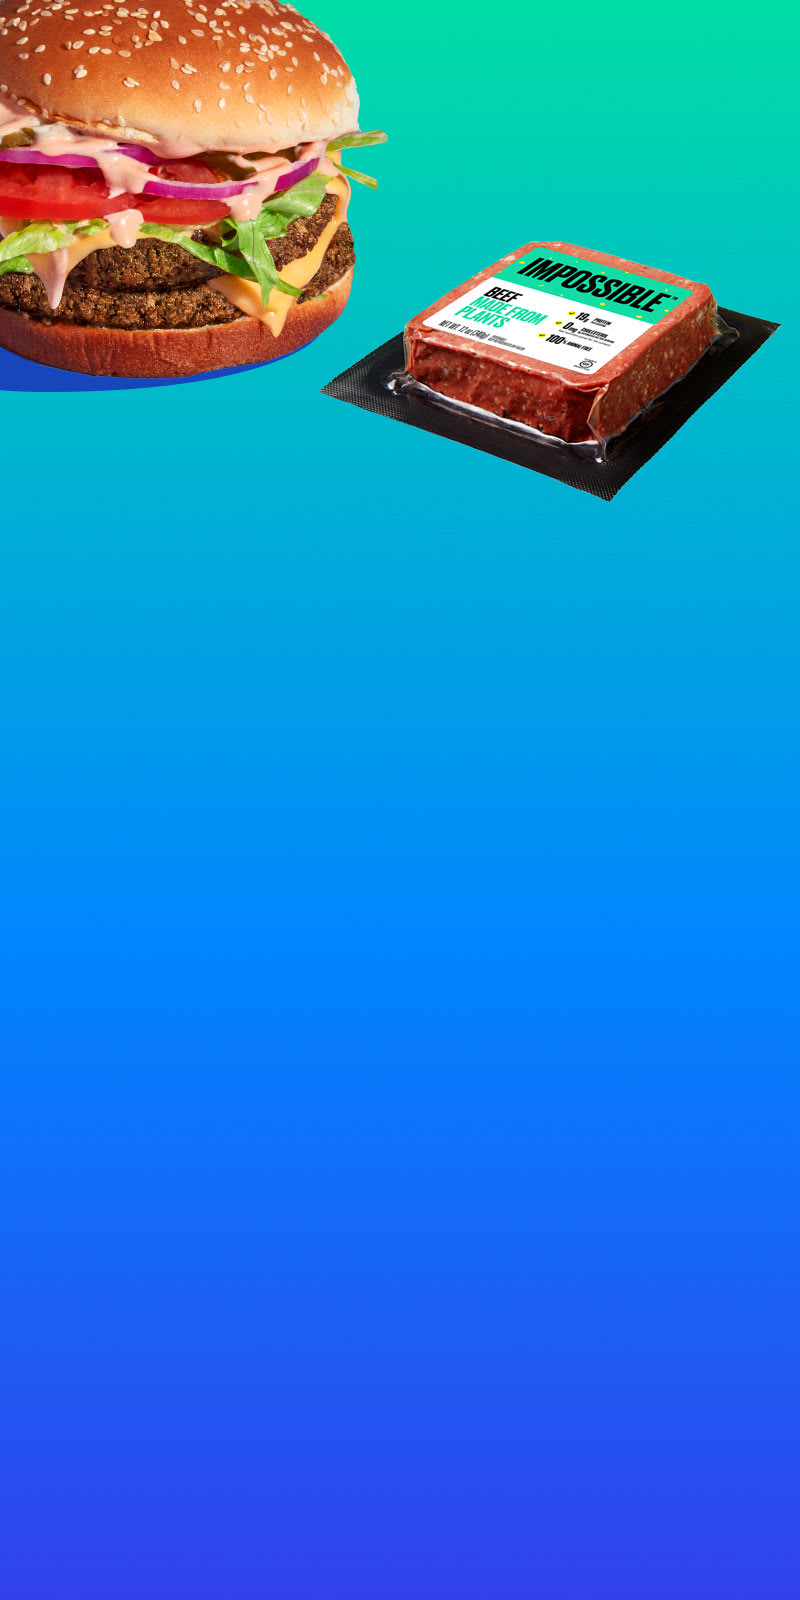 Impossible_Beef__Retail_Brick_Green_Blue_2560 x 1586